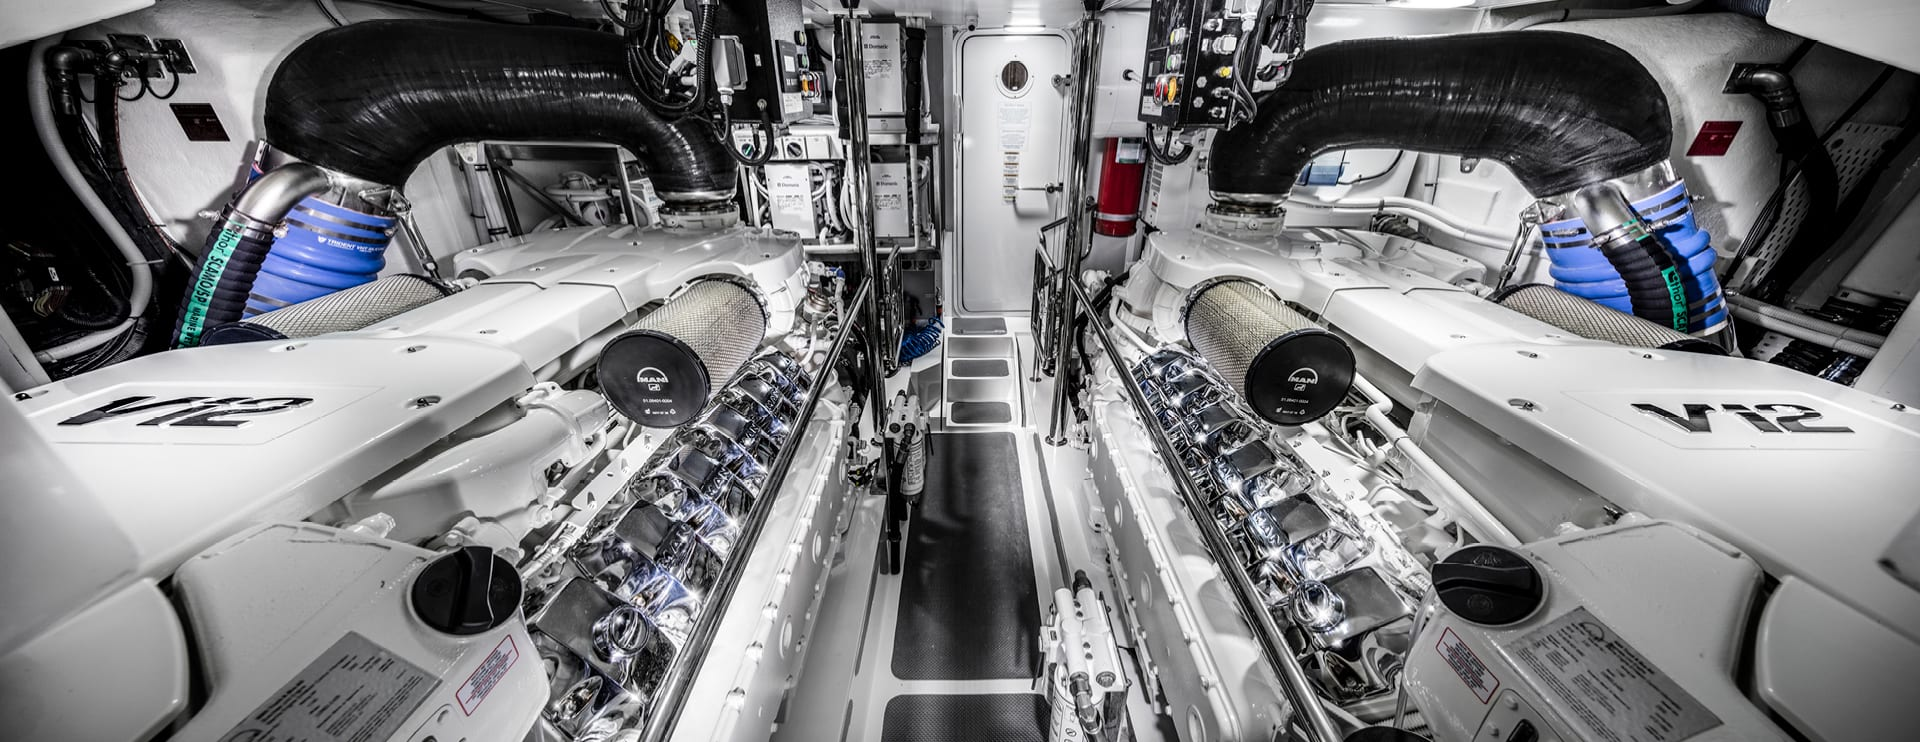 Riviera 68 Sports Motor Yacht Engine room